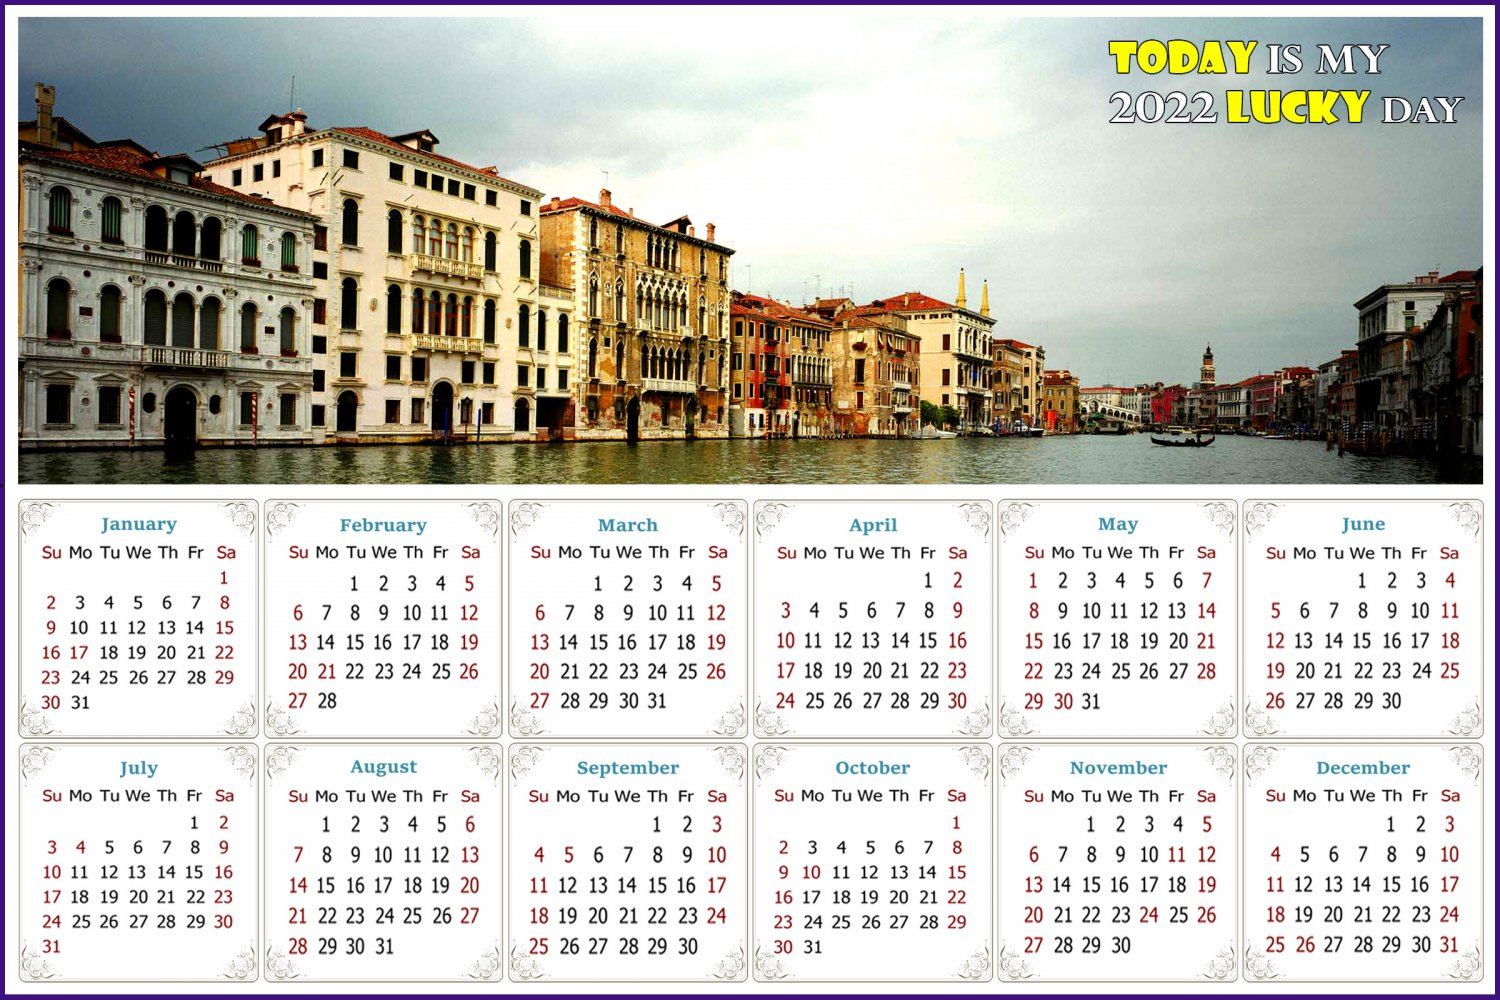 2022 Magnetic Calendar - Today is My Lucky Day - Venice Grand Canal